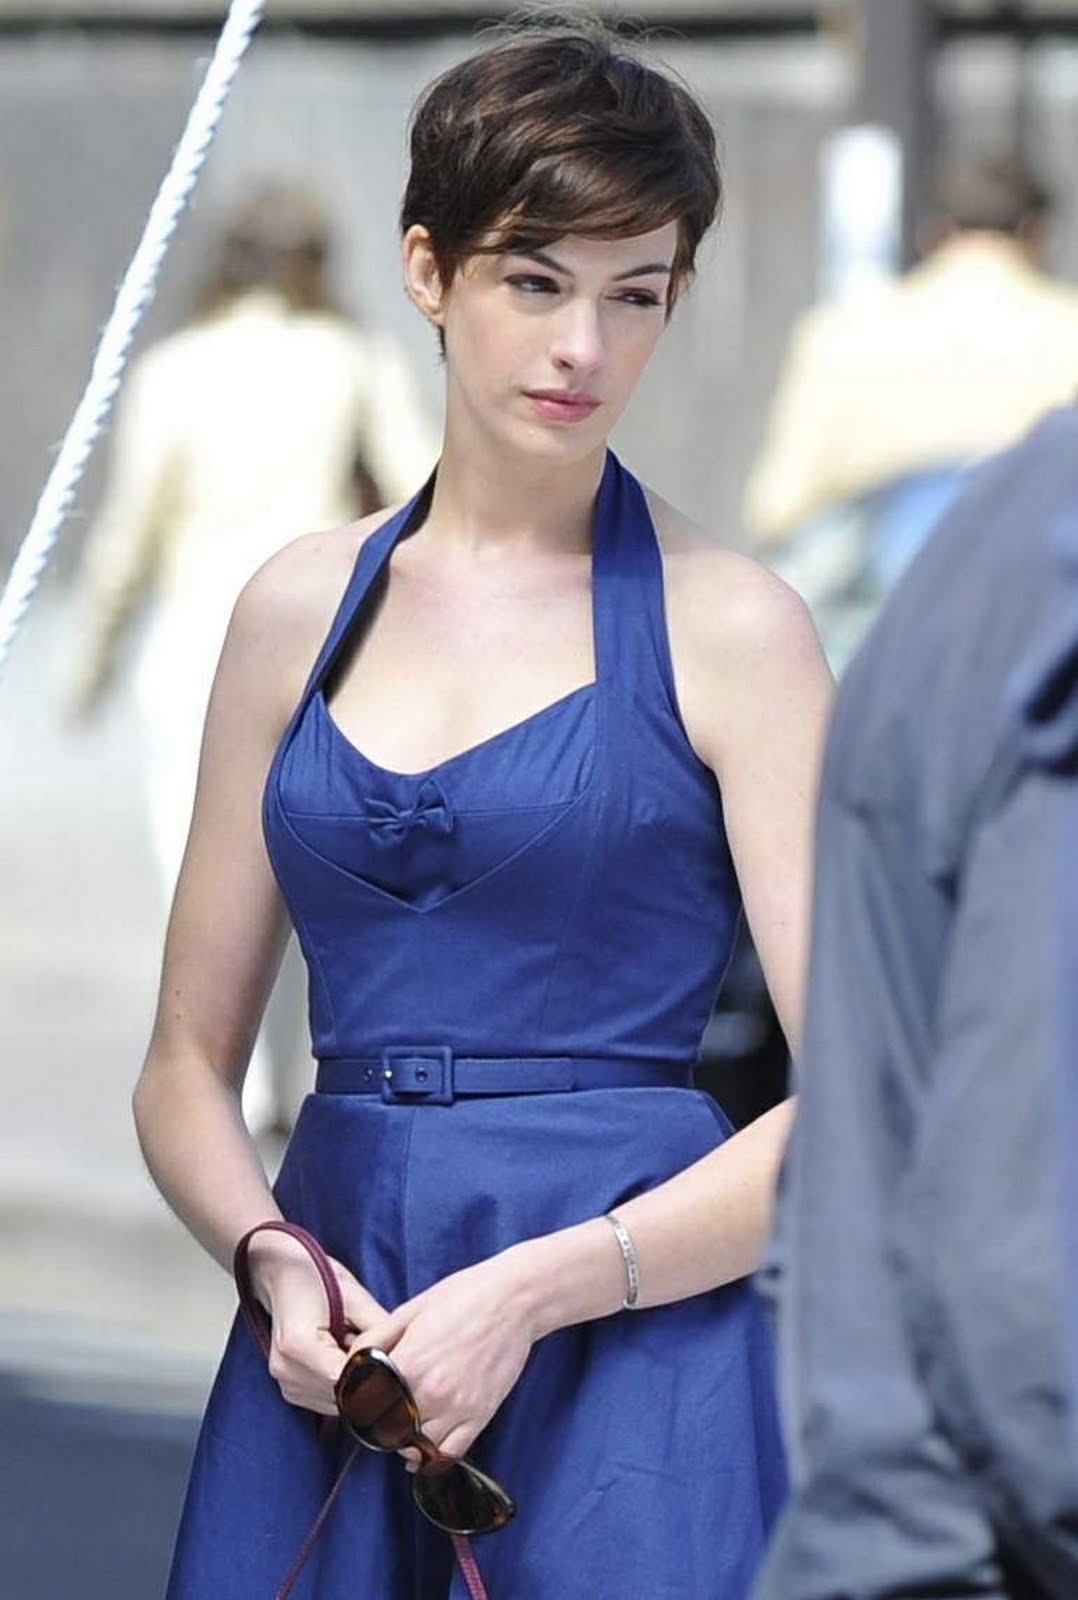 Anne Hathaway in One Day (2011)